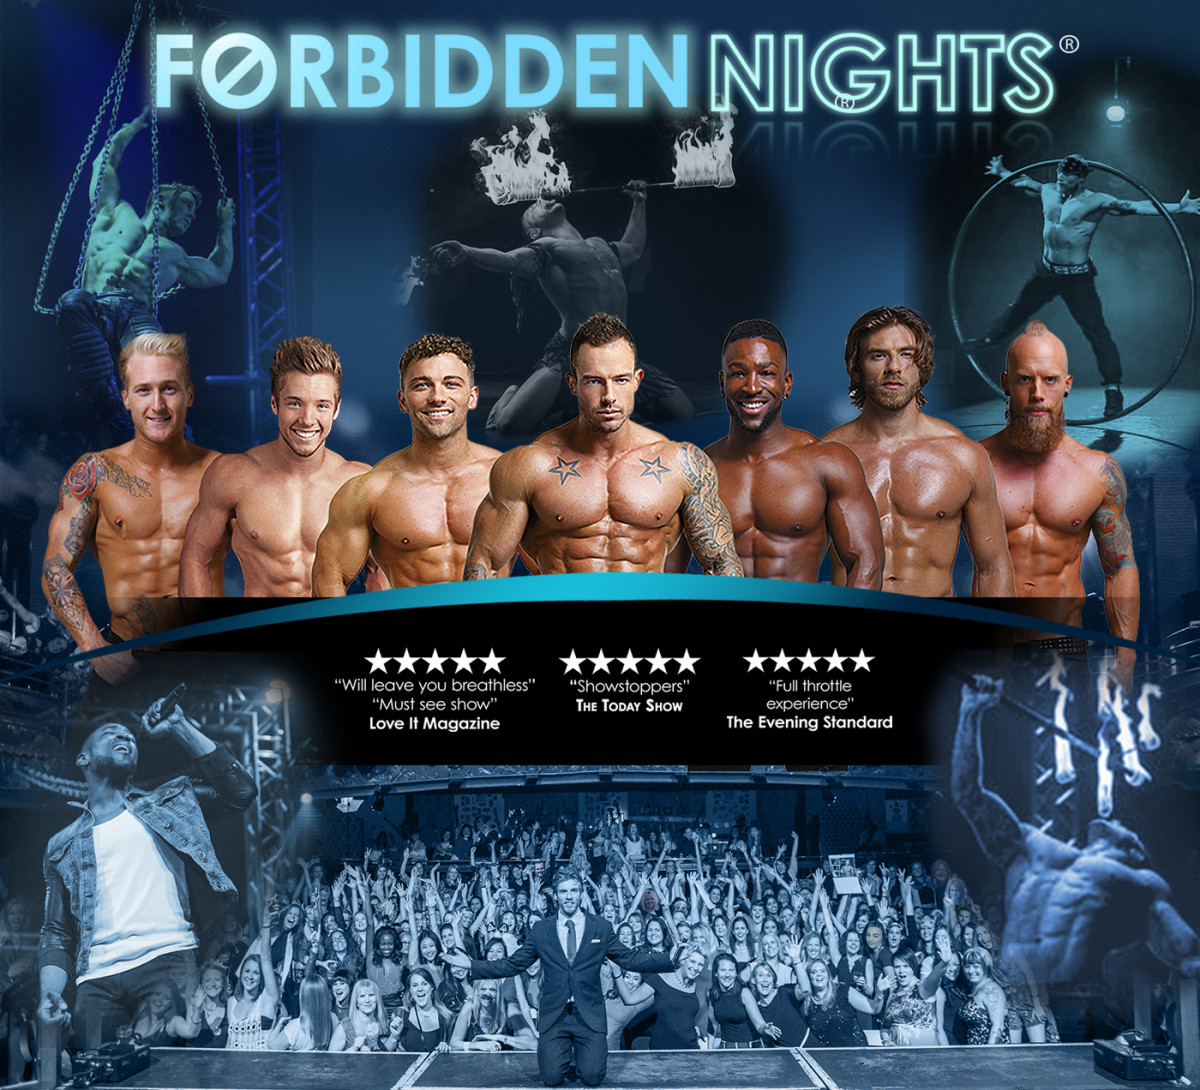 Forbidden Nights @ Infernos